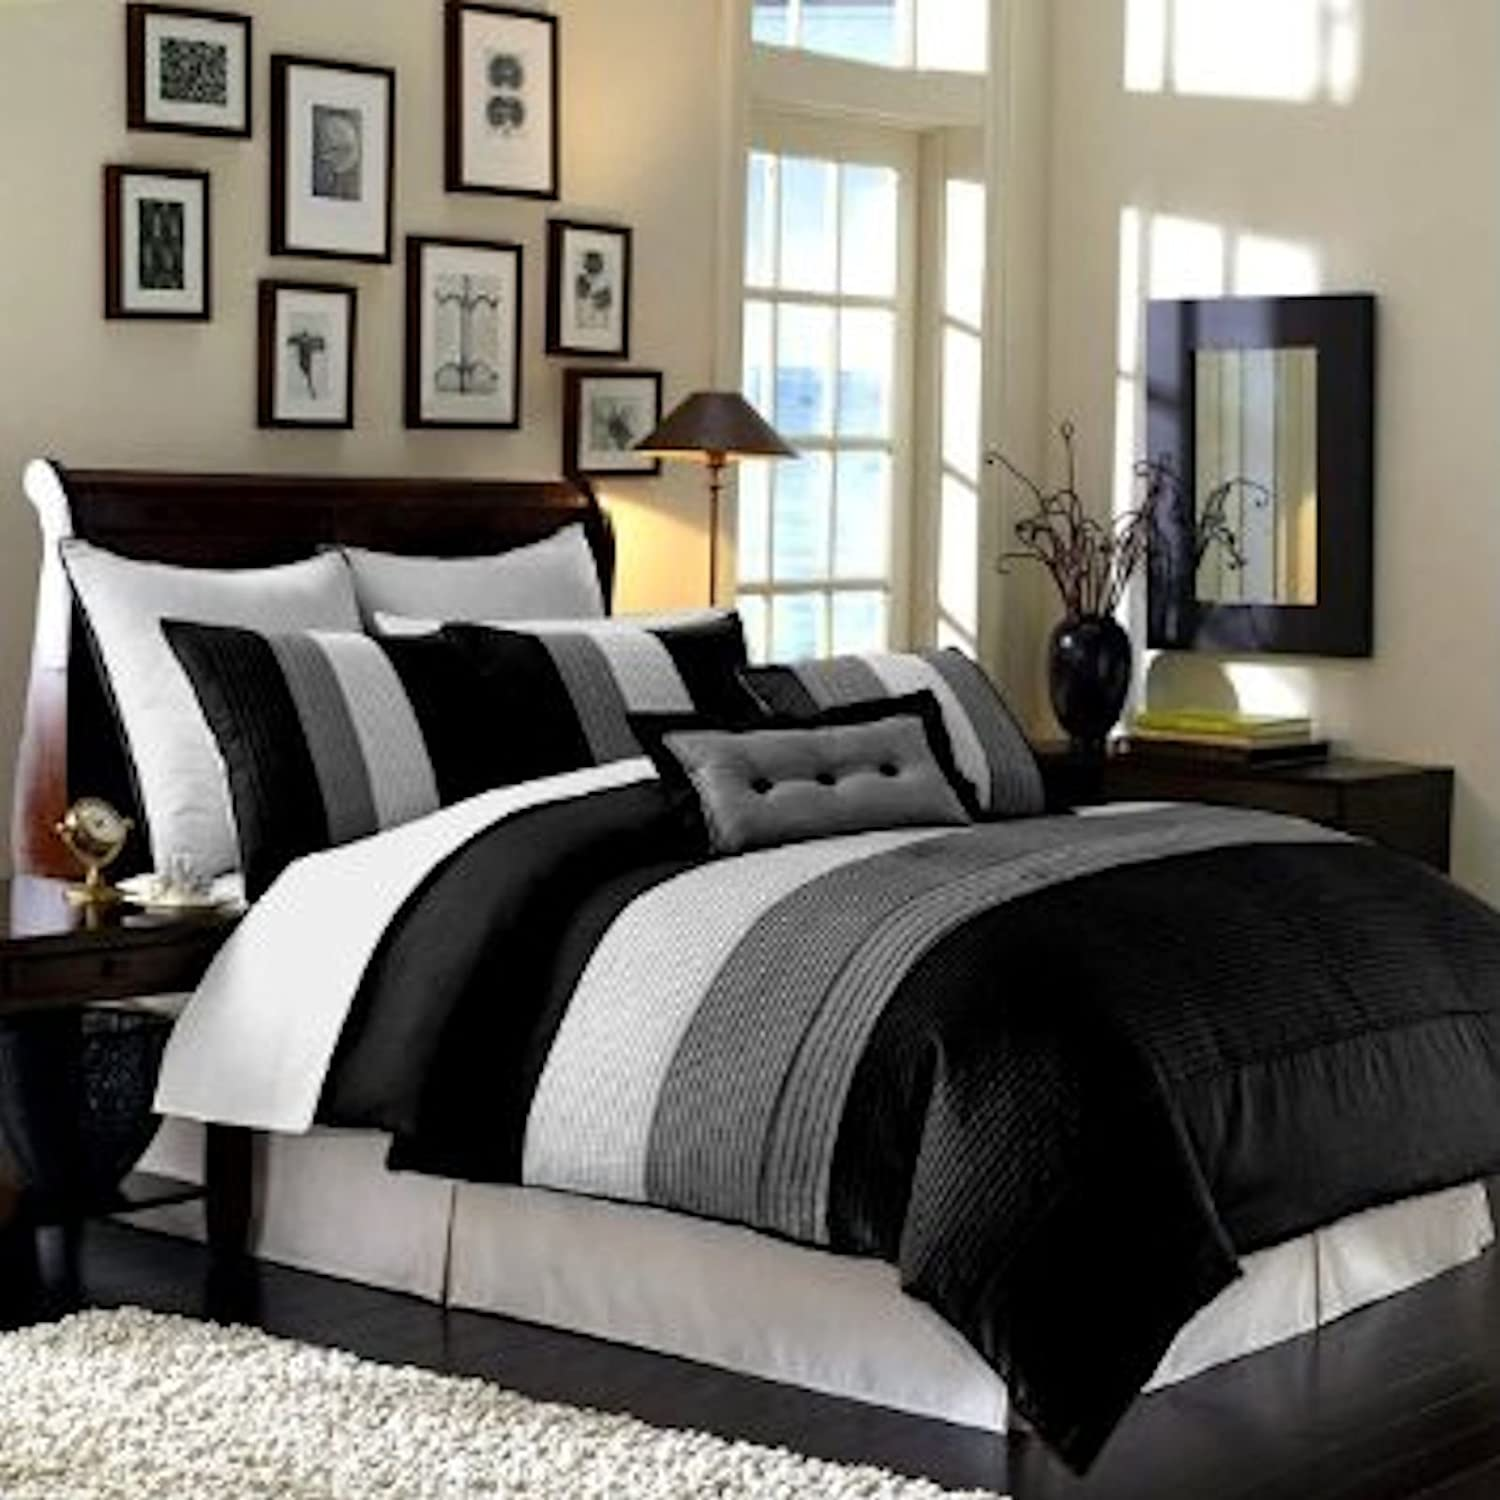 8 Pieces Black White Grey Luxury Stripe Comforter (86x88) Bed-in-a-bag Set Full or Double Size Bedding